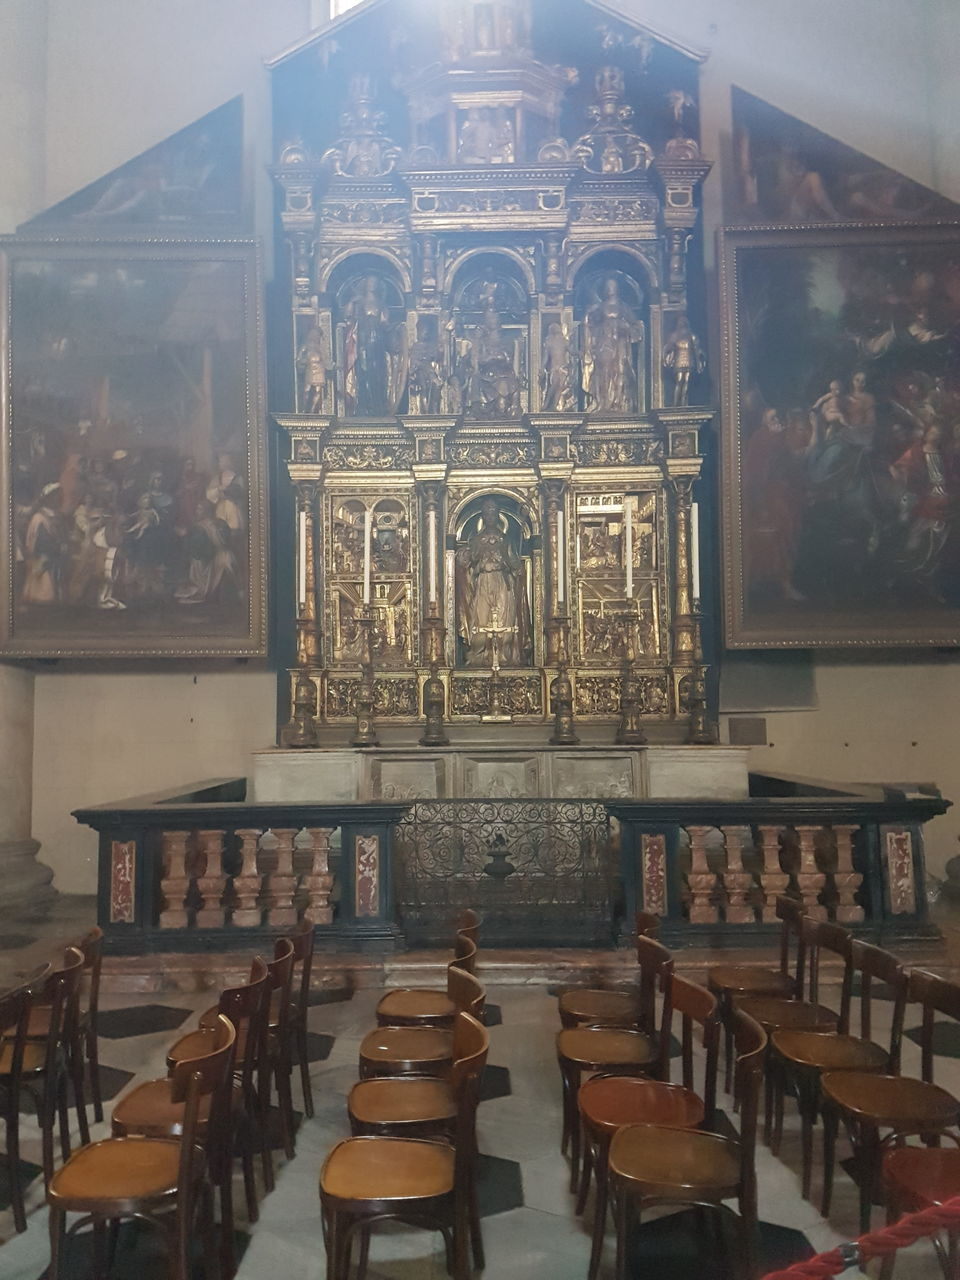 spirituality, religion, place of worship, indoors, human representation, statue, sculpture, no people, altar, history, day, pew, architecture